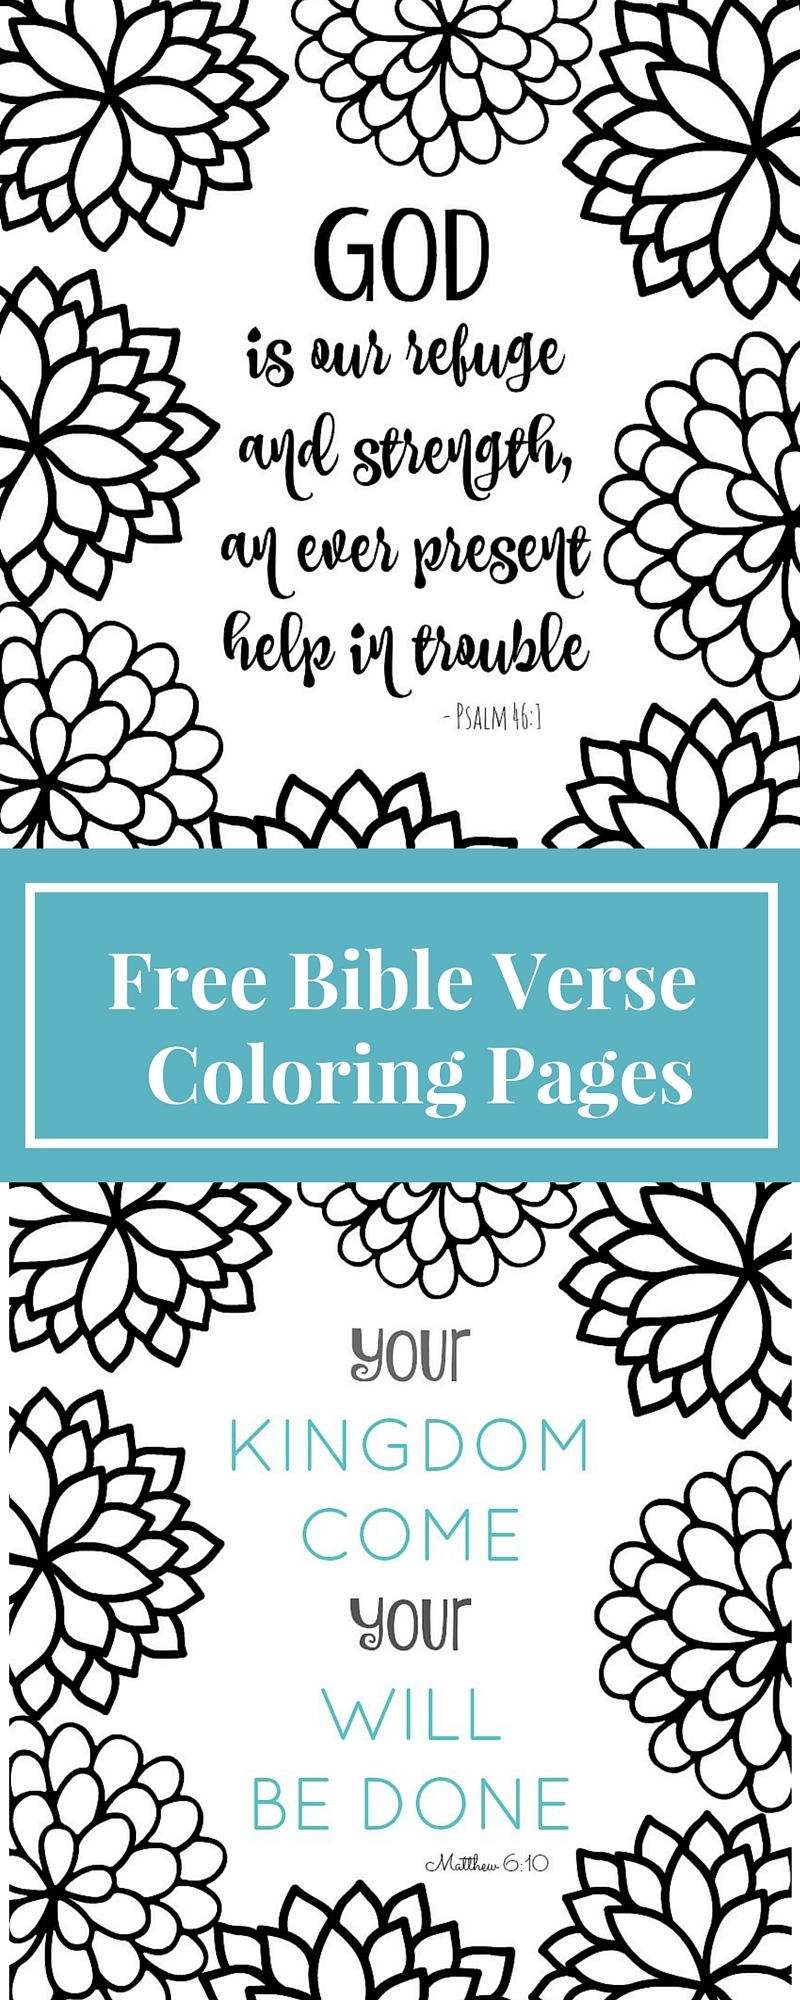 scripture coloring pages - bible verse coloring pages